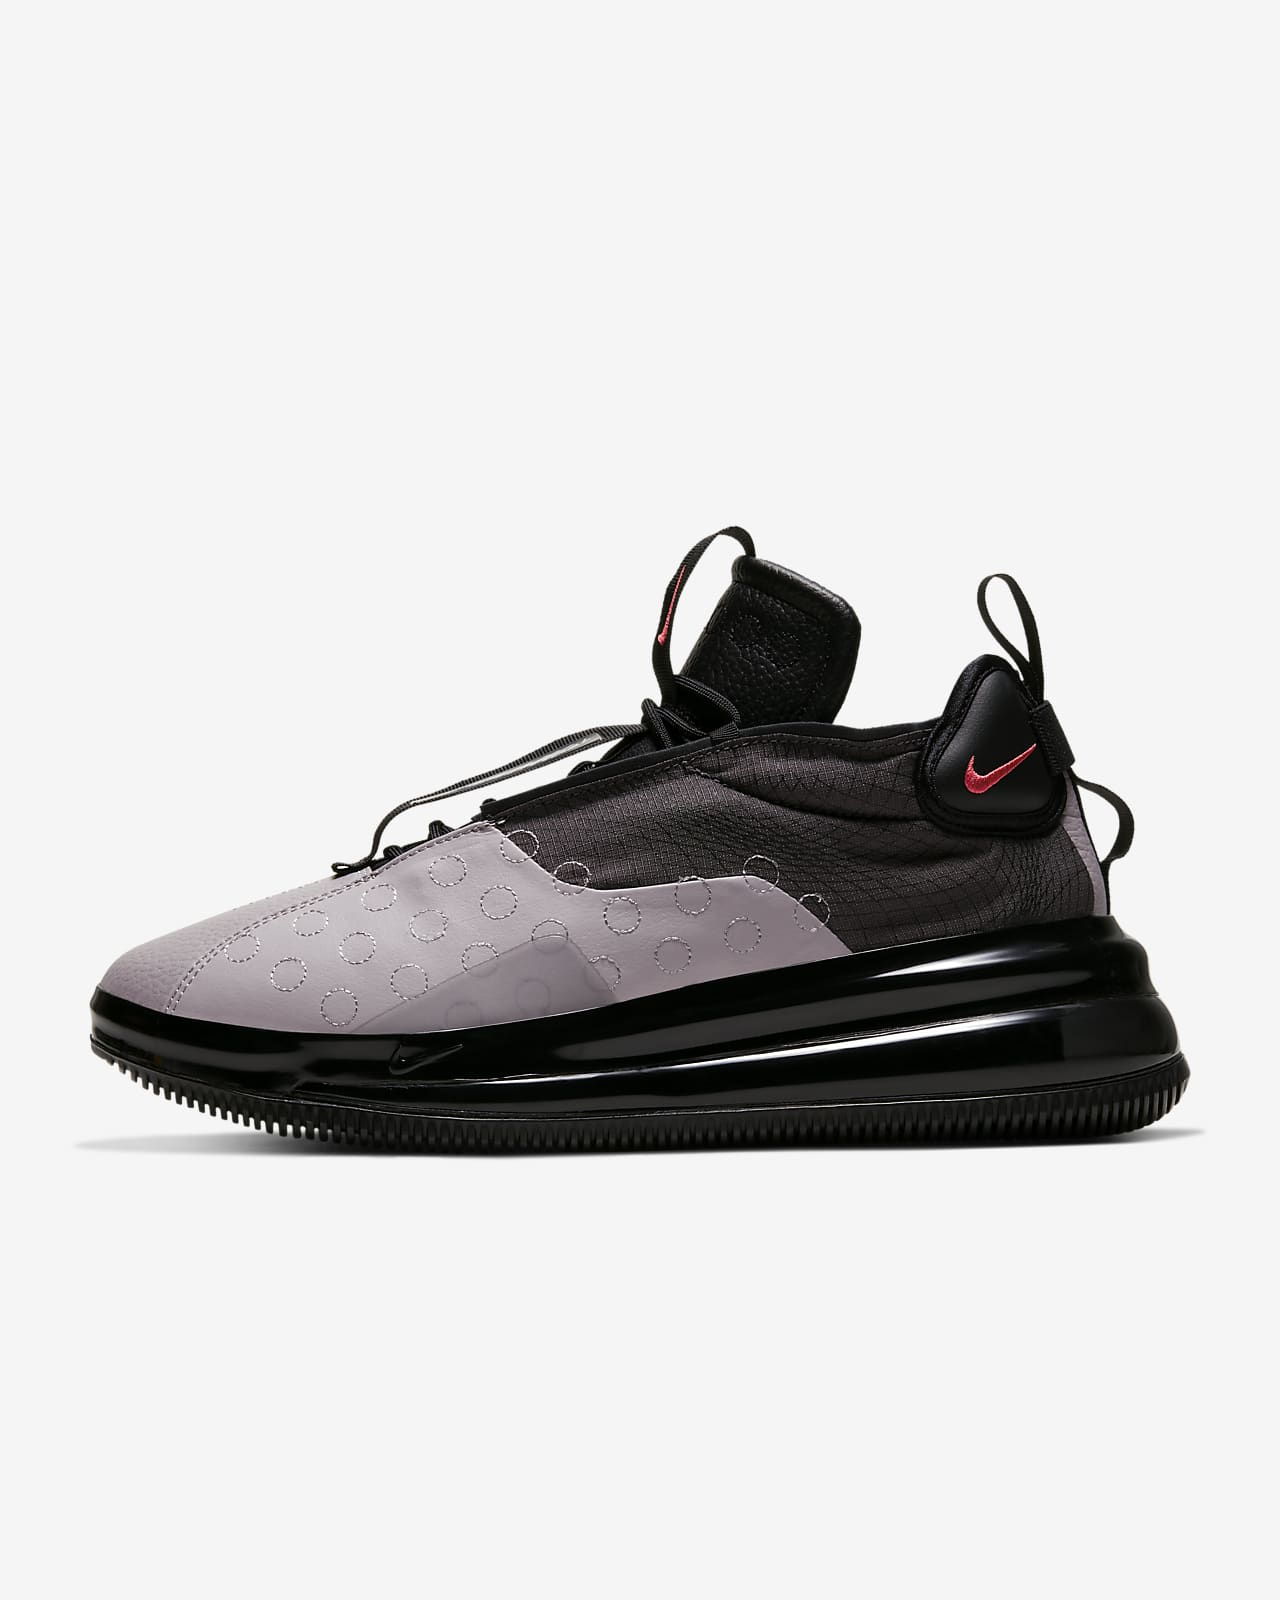 Nike Air Max 720 Waves Men's Shoe